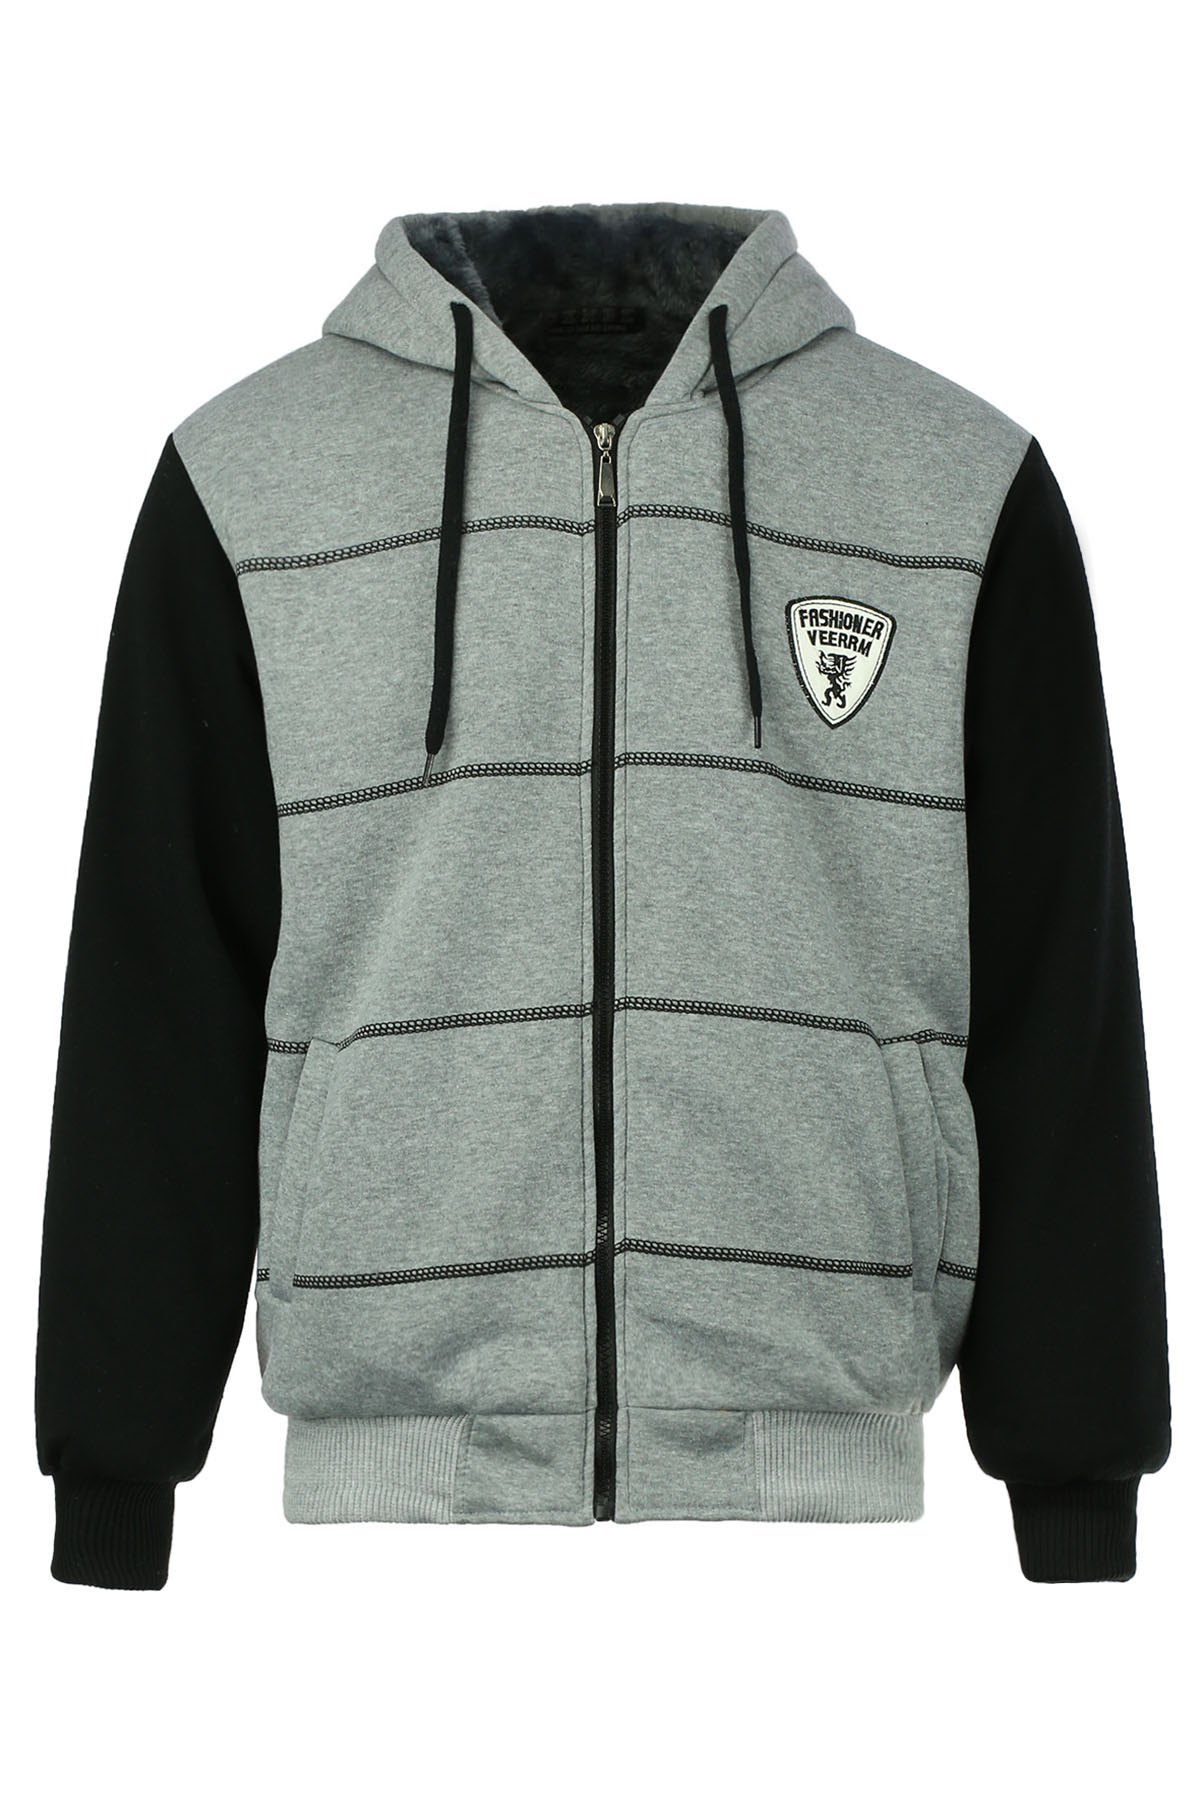 Slimming Drawstring Hooded Stripes Pattern Badge Design Color Block Long Sleeves Men's Flocky Hoodie - GRAY L